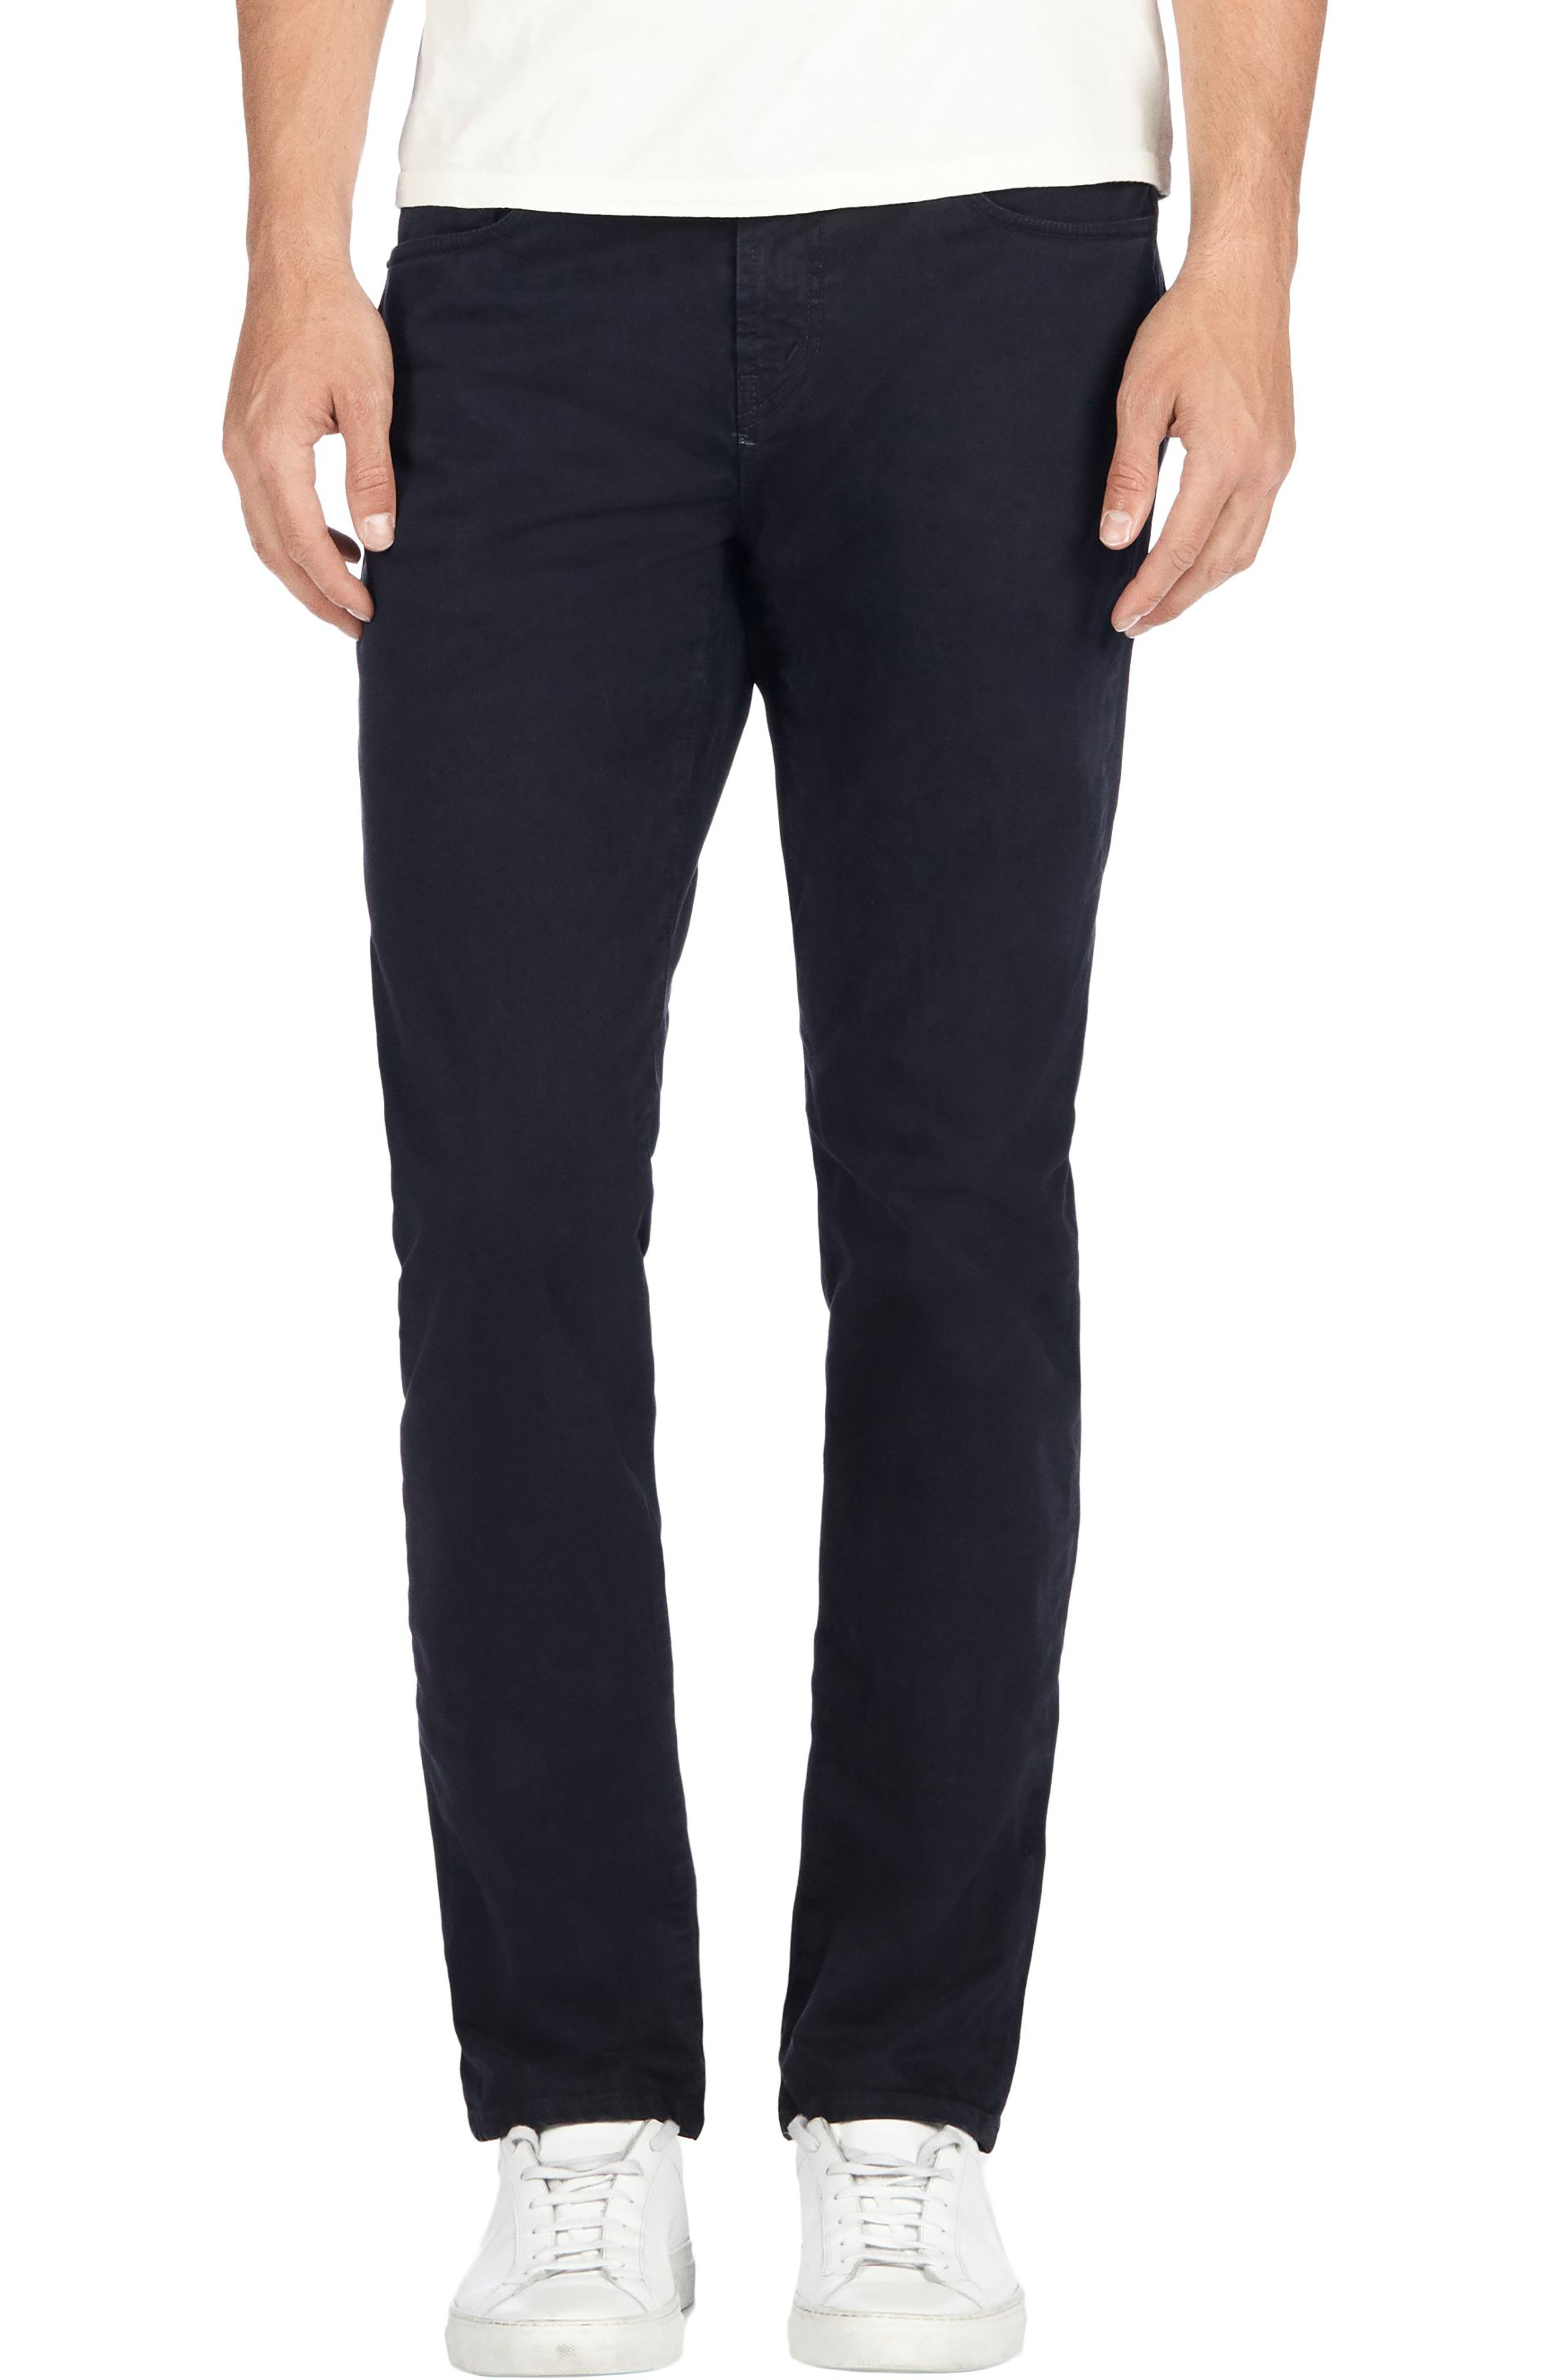 'Kane' Slim Fit Cotton Twill Pants,                             Main thumbnail 1, color,                             411